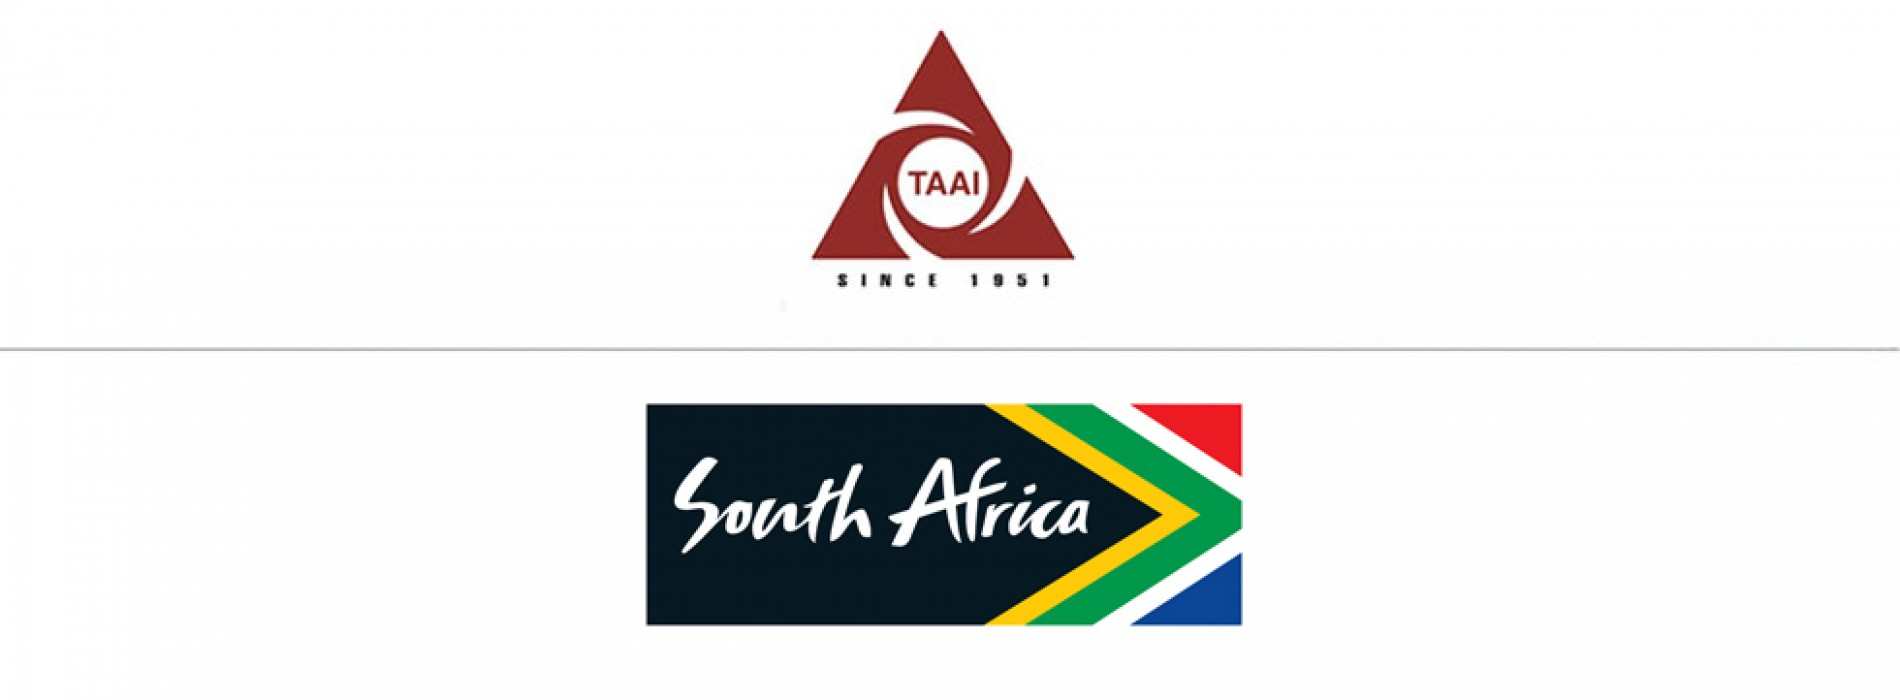 TAAI signs Agreement with South Africa Tourism to educate agents across India